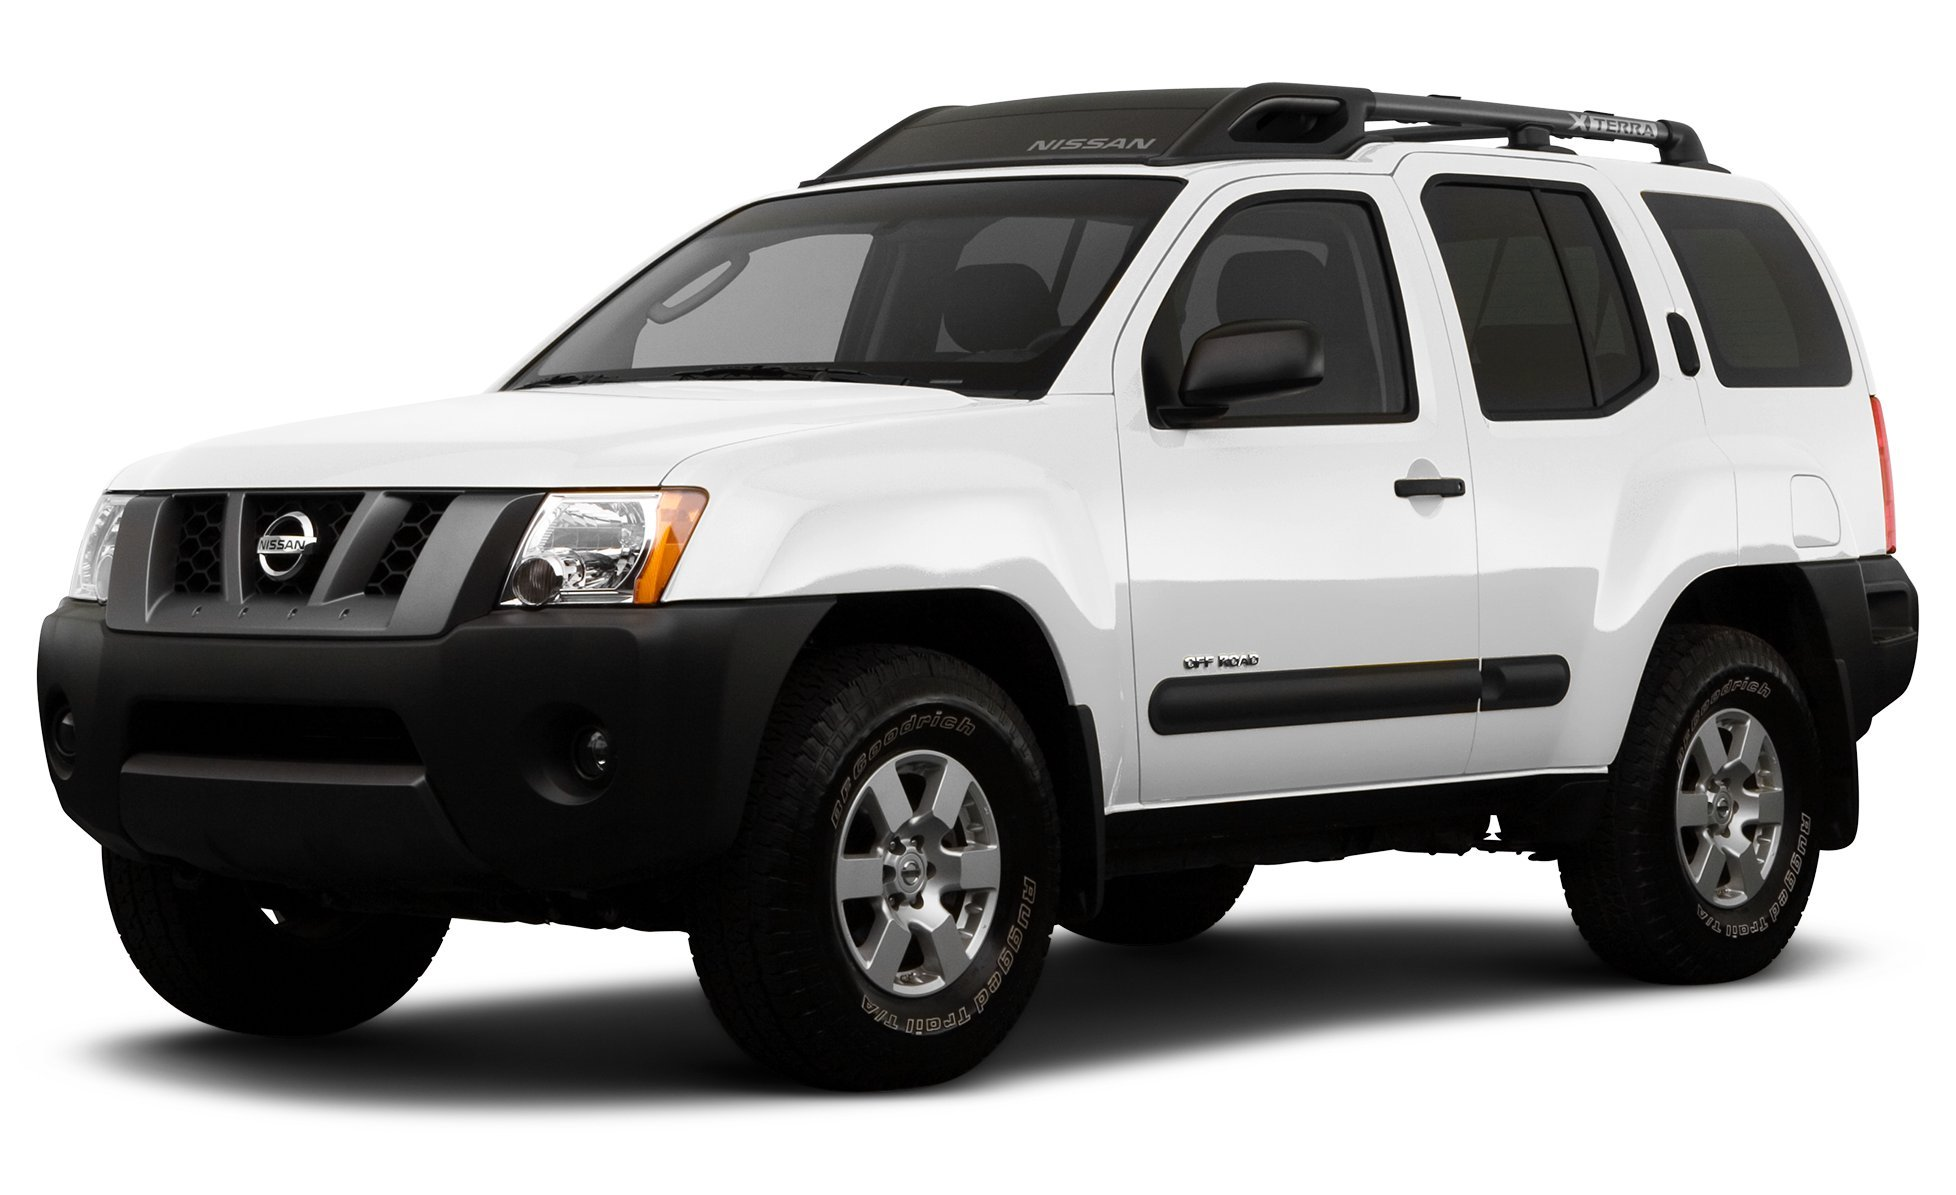 2008 Nissan Xterra Off Road, 4-Wheel Drive 4-Door Automatic Transmission ...